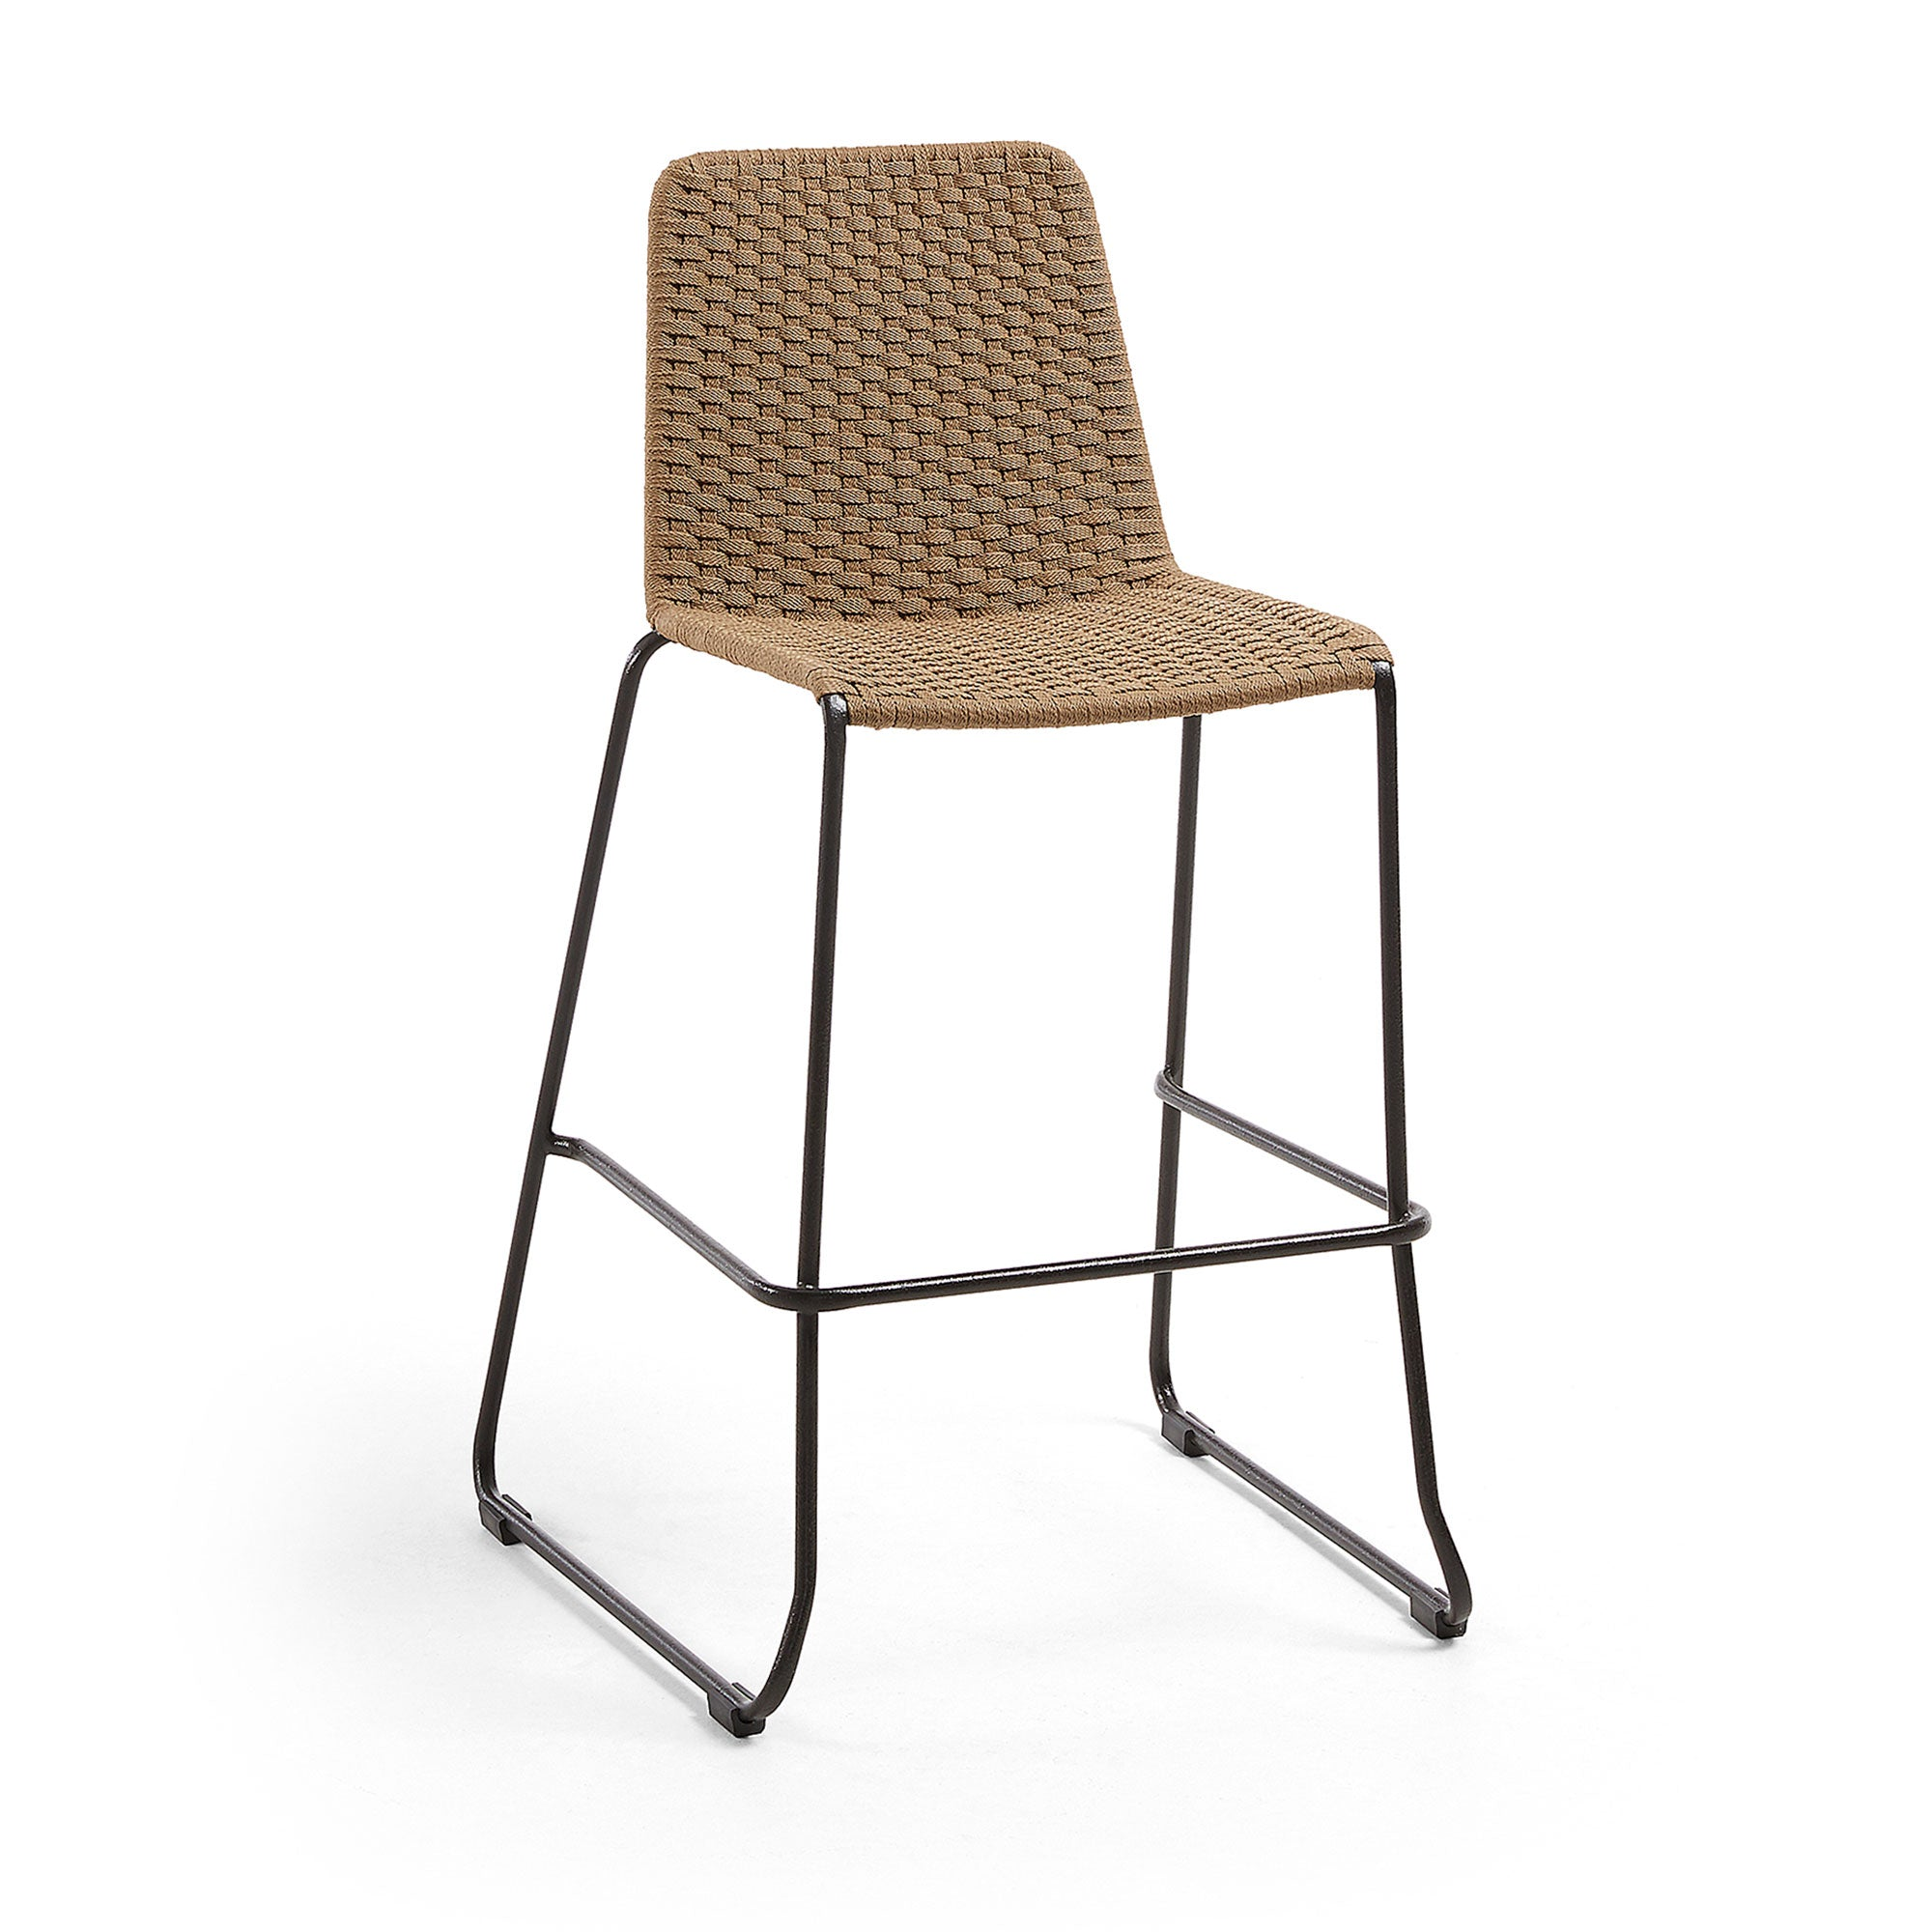 Meggie Patio Bar Height Barstool | Tan